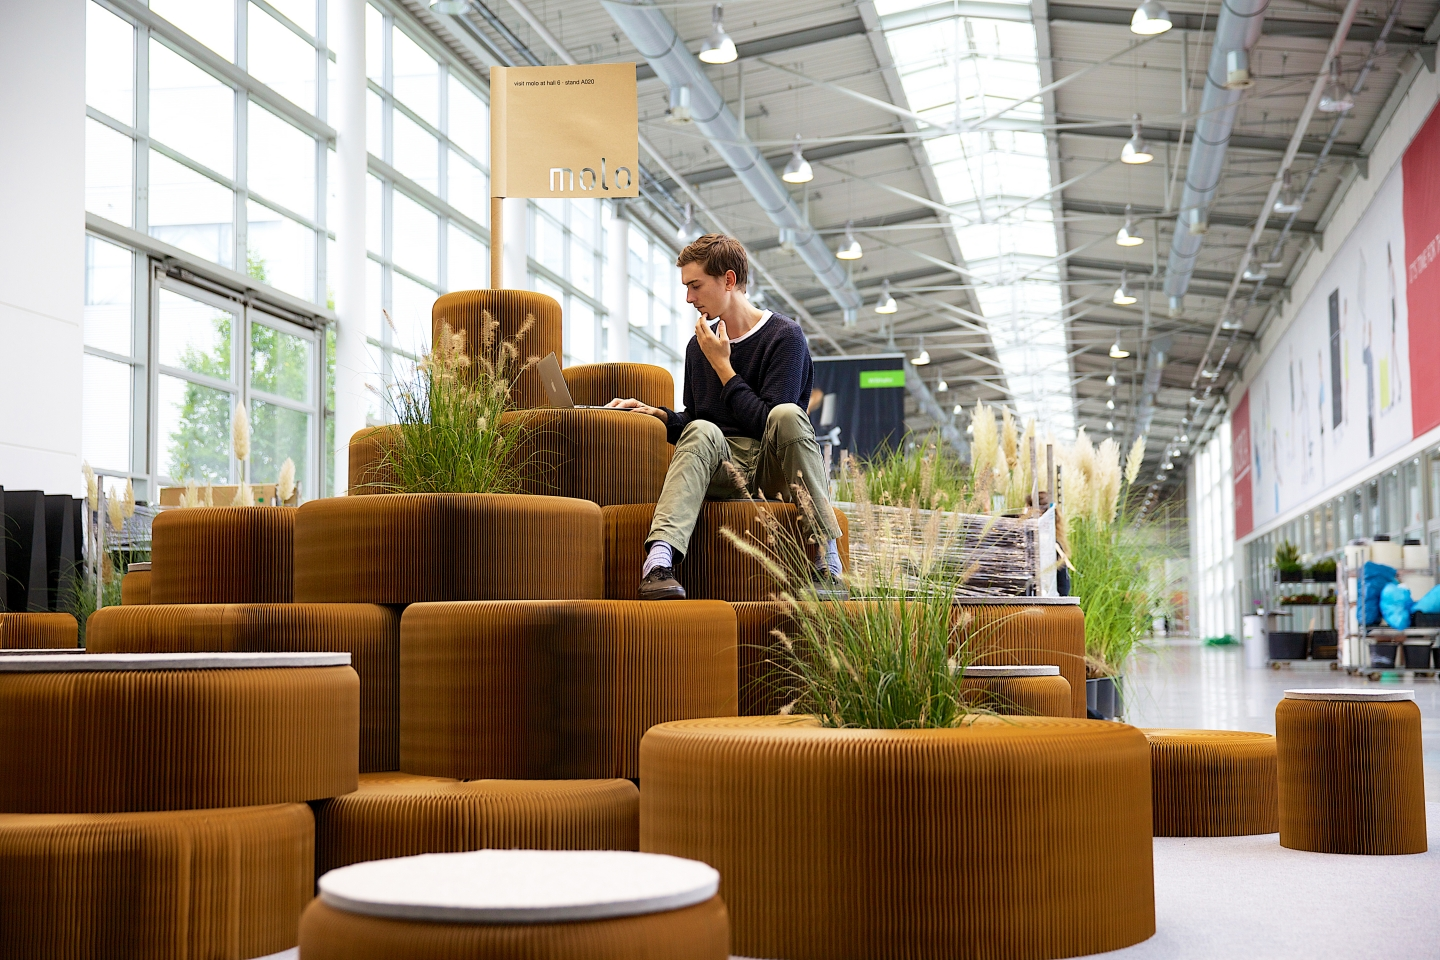 modular honeycomb paper furniture by molo - a hill made from softseating and live plants at Orgatec 2014